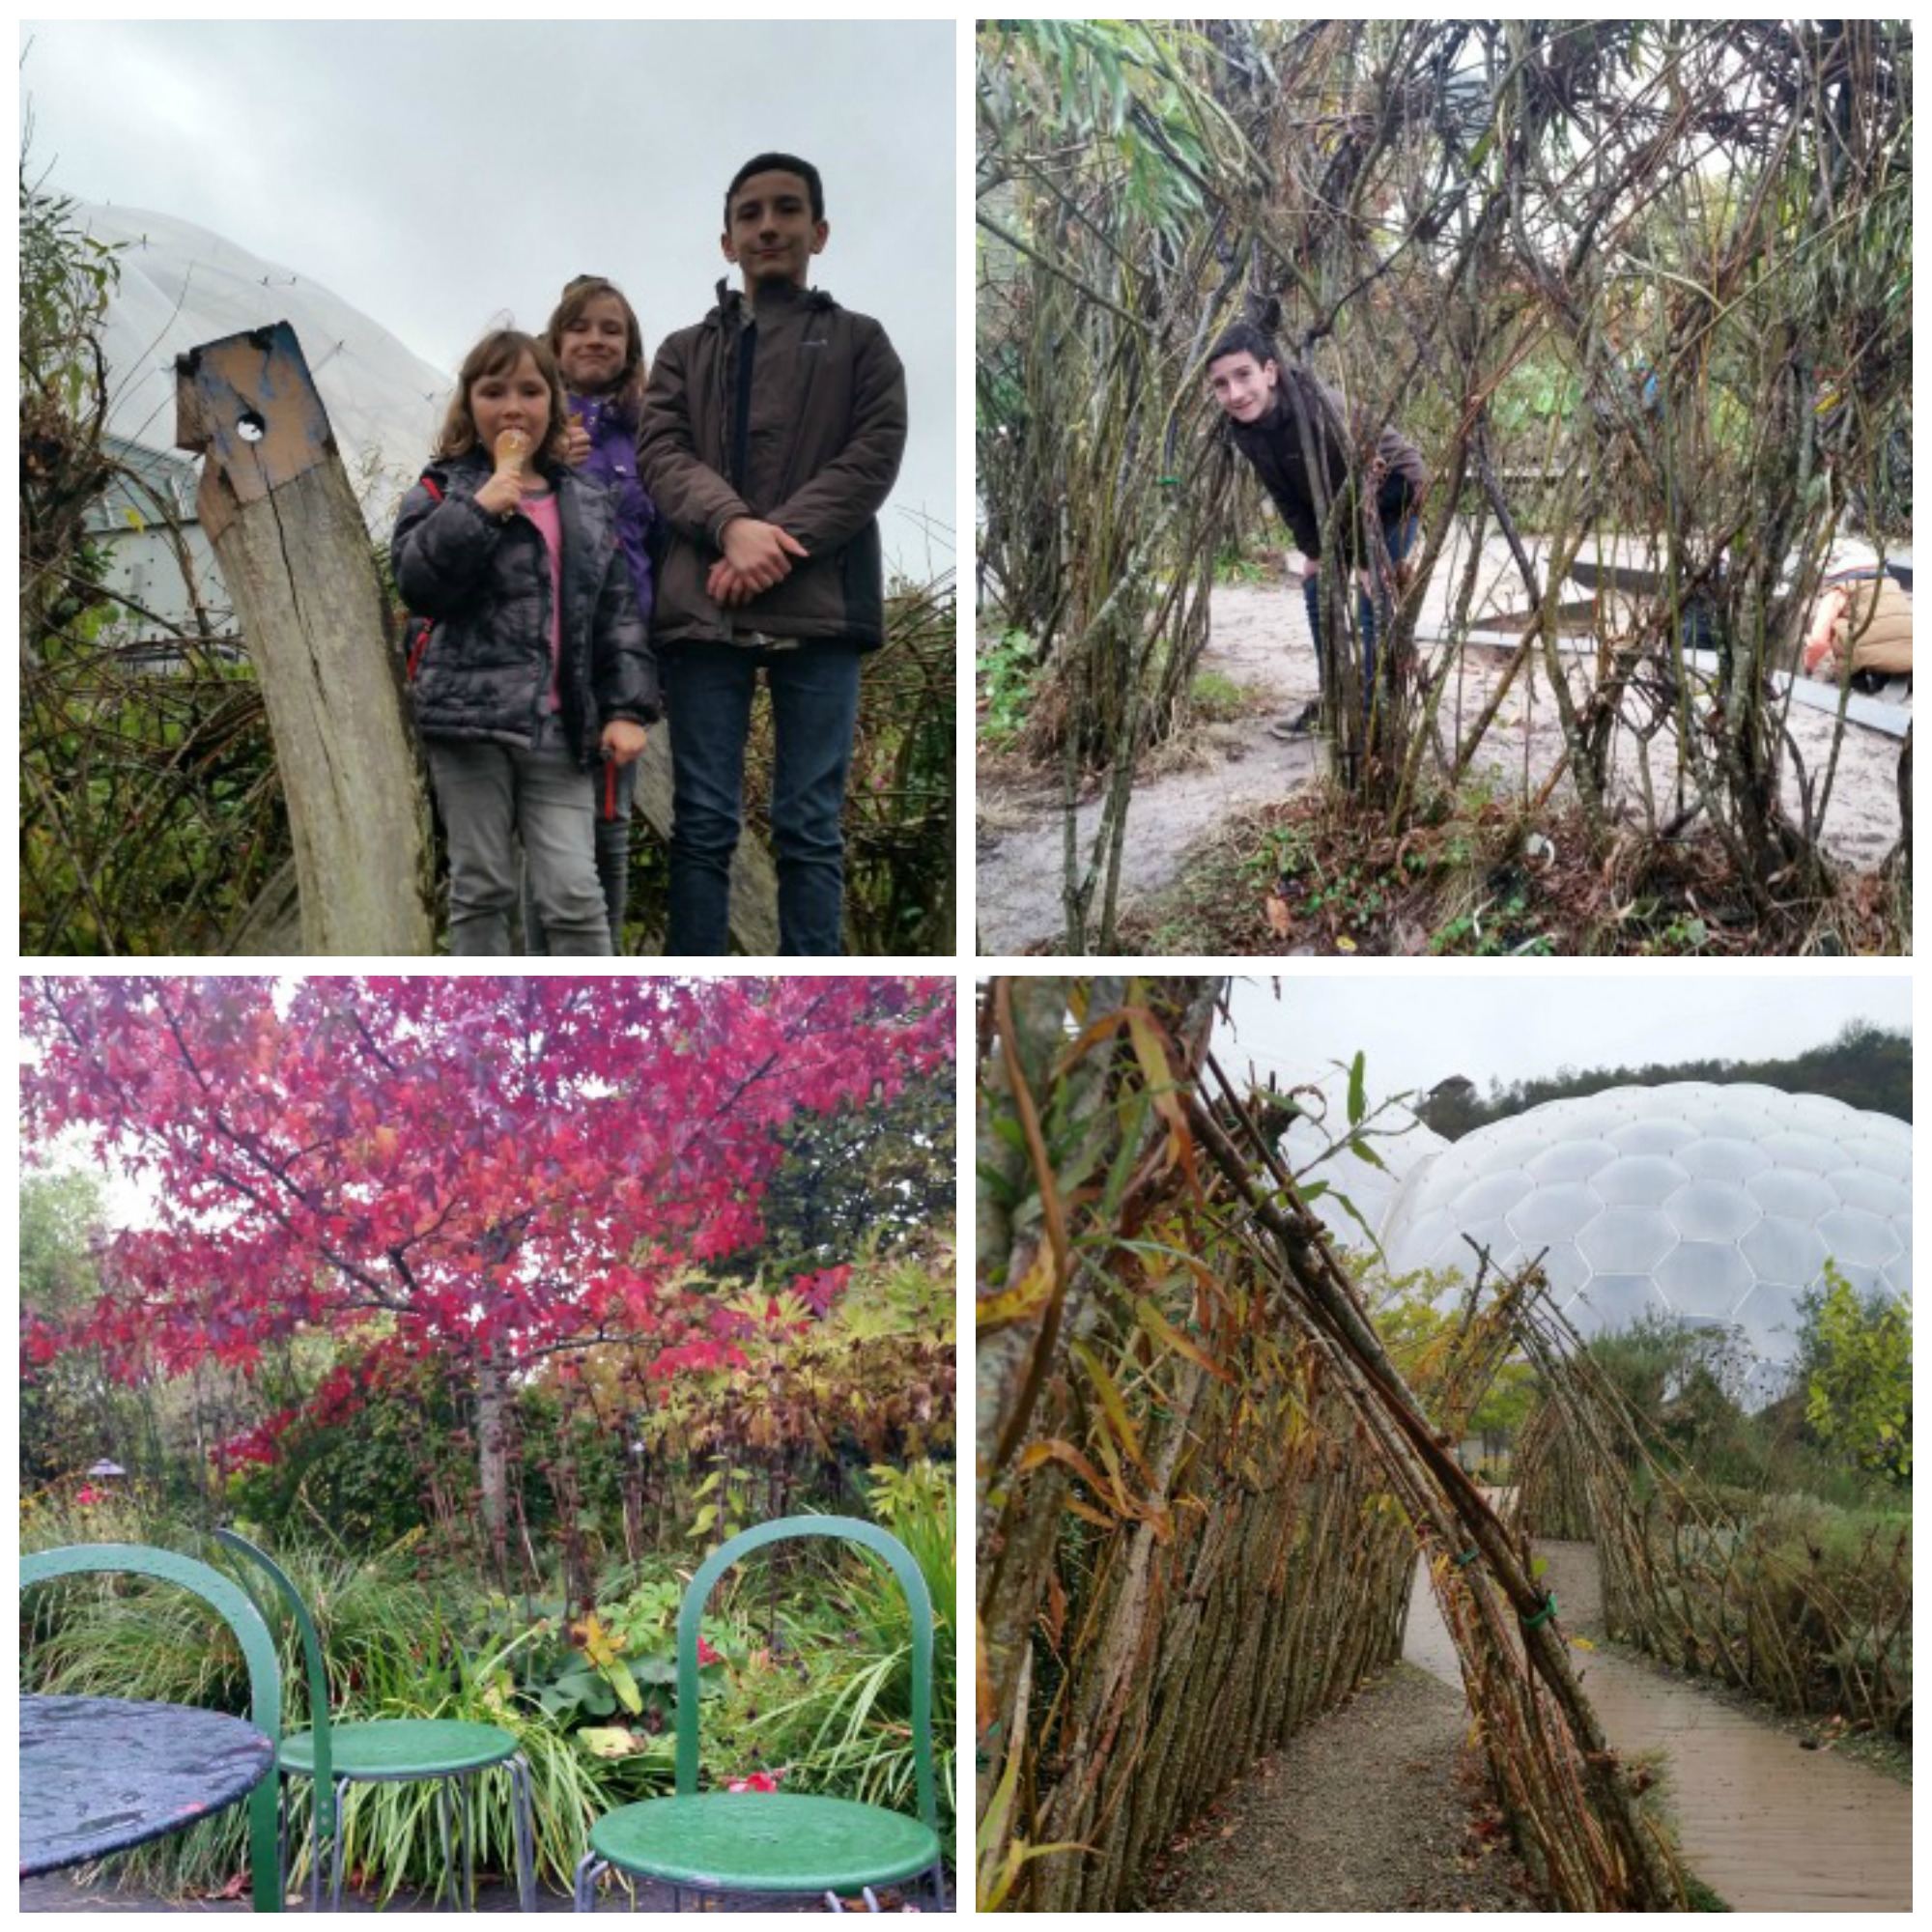 a collage of 4 photos.My 3 children stand outside in the dyers garden.My son crouches through a willow arch.A red Acer contrasts with the green table and two chairs in the foreground.A willow arch and a biome in the background